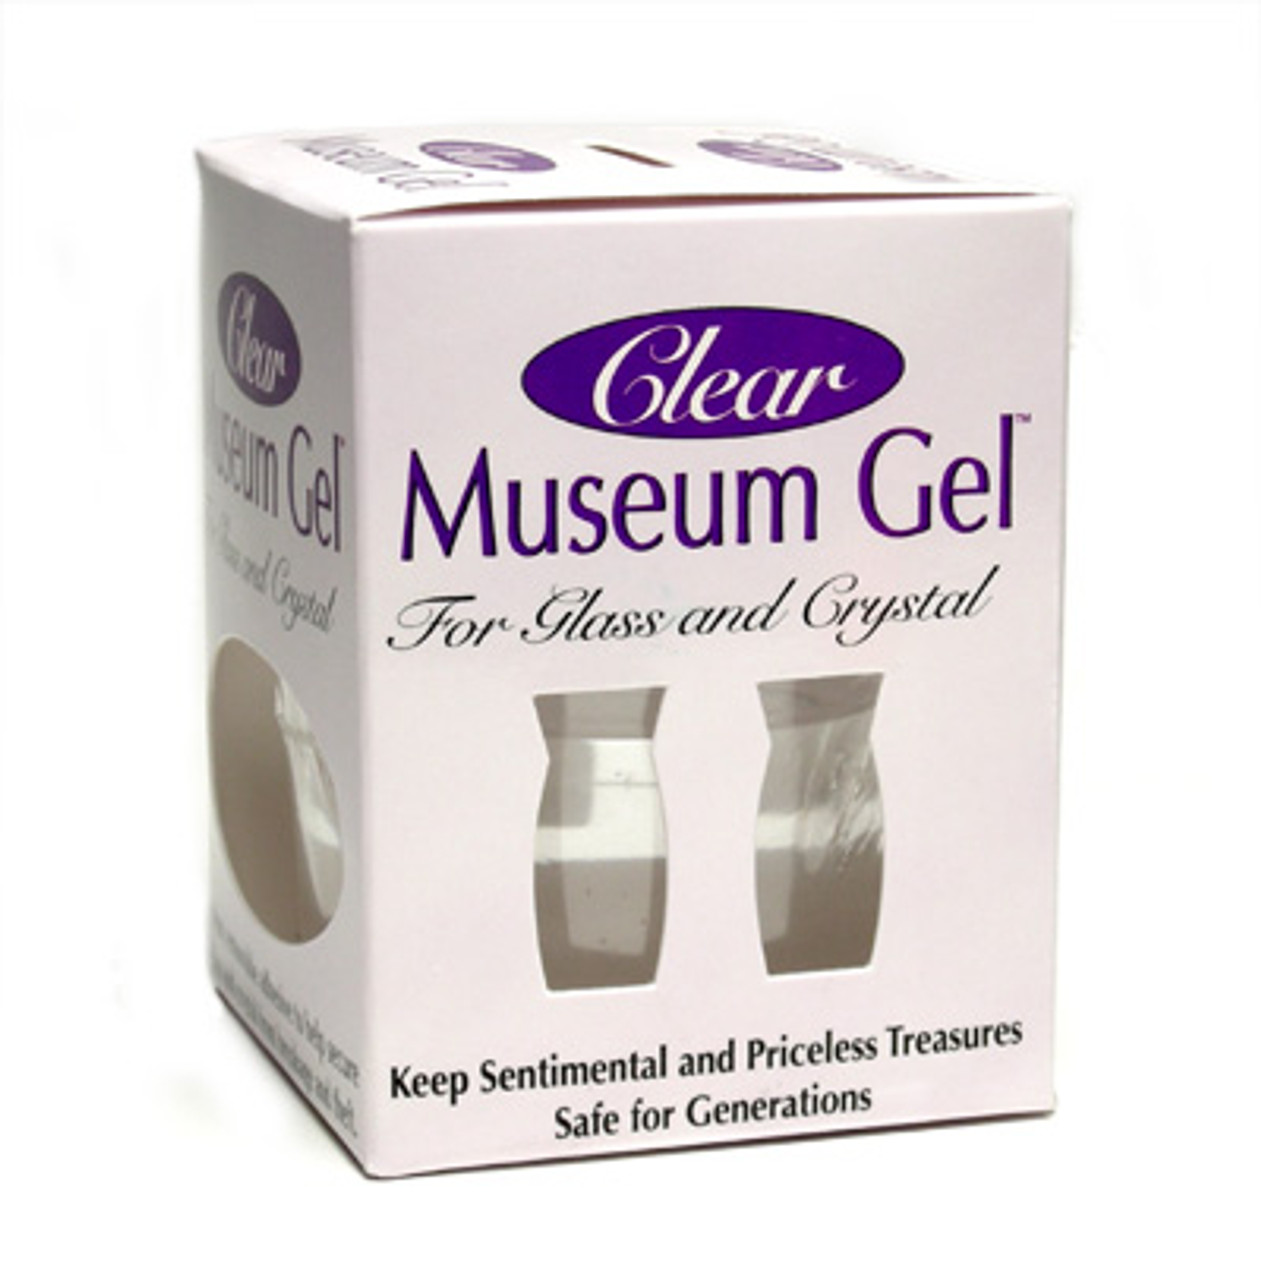 Museum Gel  6 oz jar